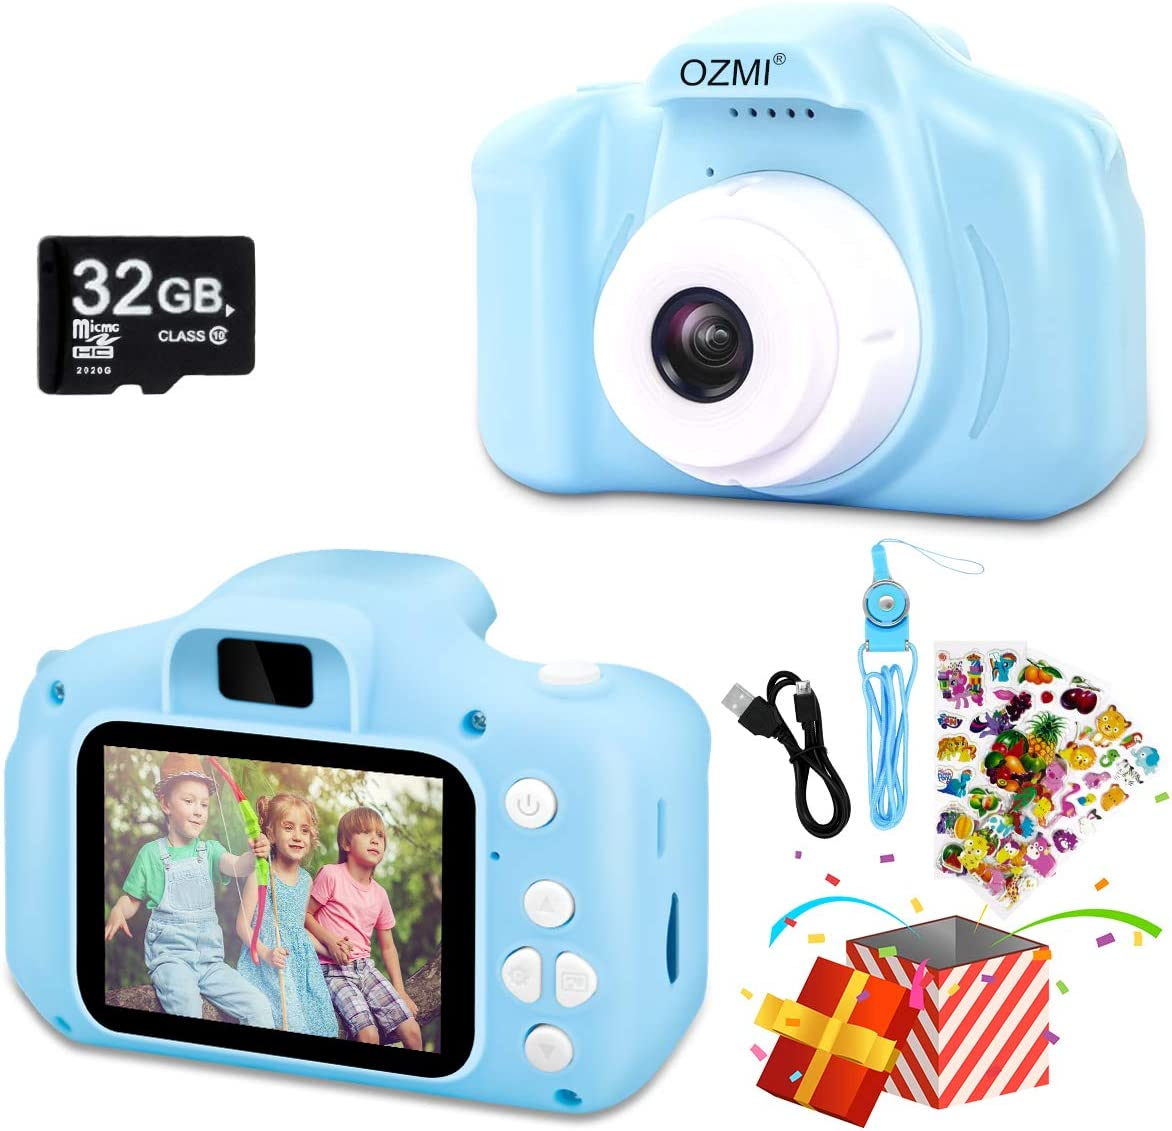 OZMI Upgrade Kids Selfie Camera, Christmas Birthday Gifts for Boys Age 3-12, Children Digital Cameras 1080P 2 Inch Toddler, Portable Toy for 3 4 5 6 7 8 9 10 Year Old Boy with 32GB SD Card (Blue)